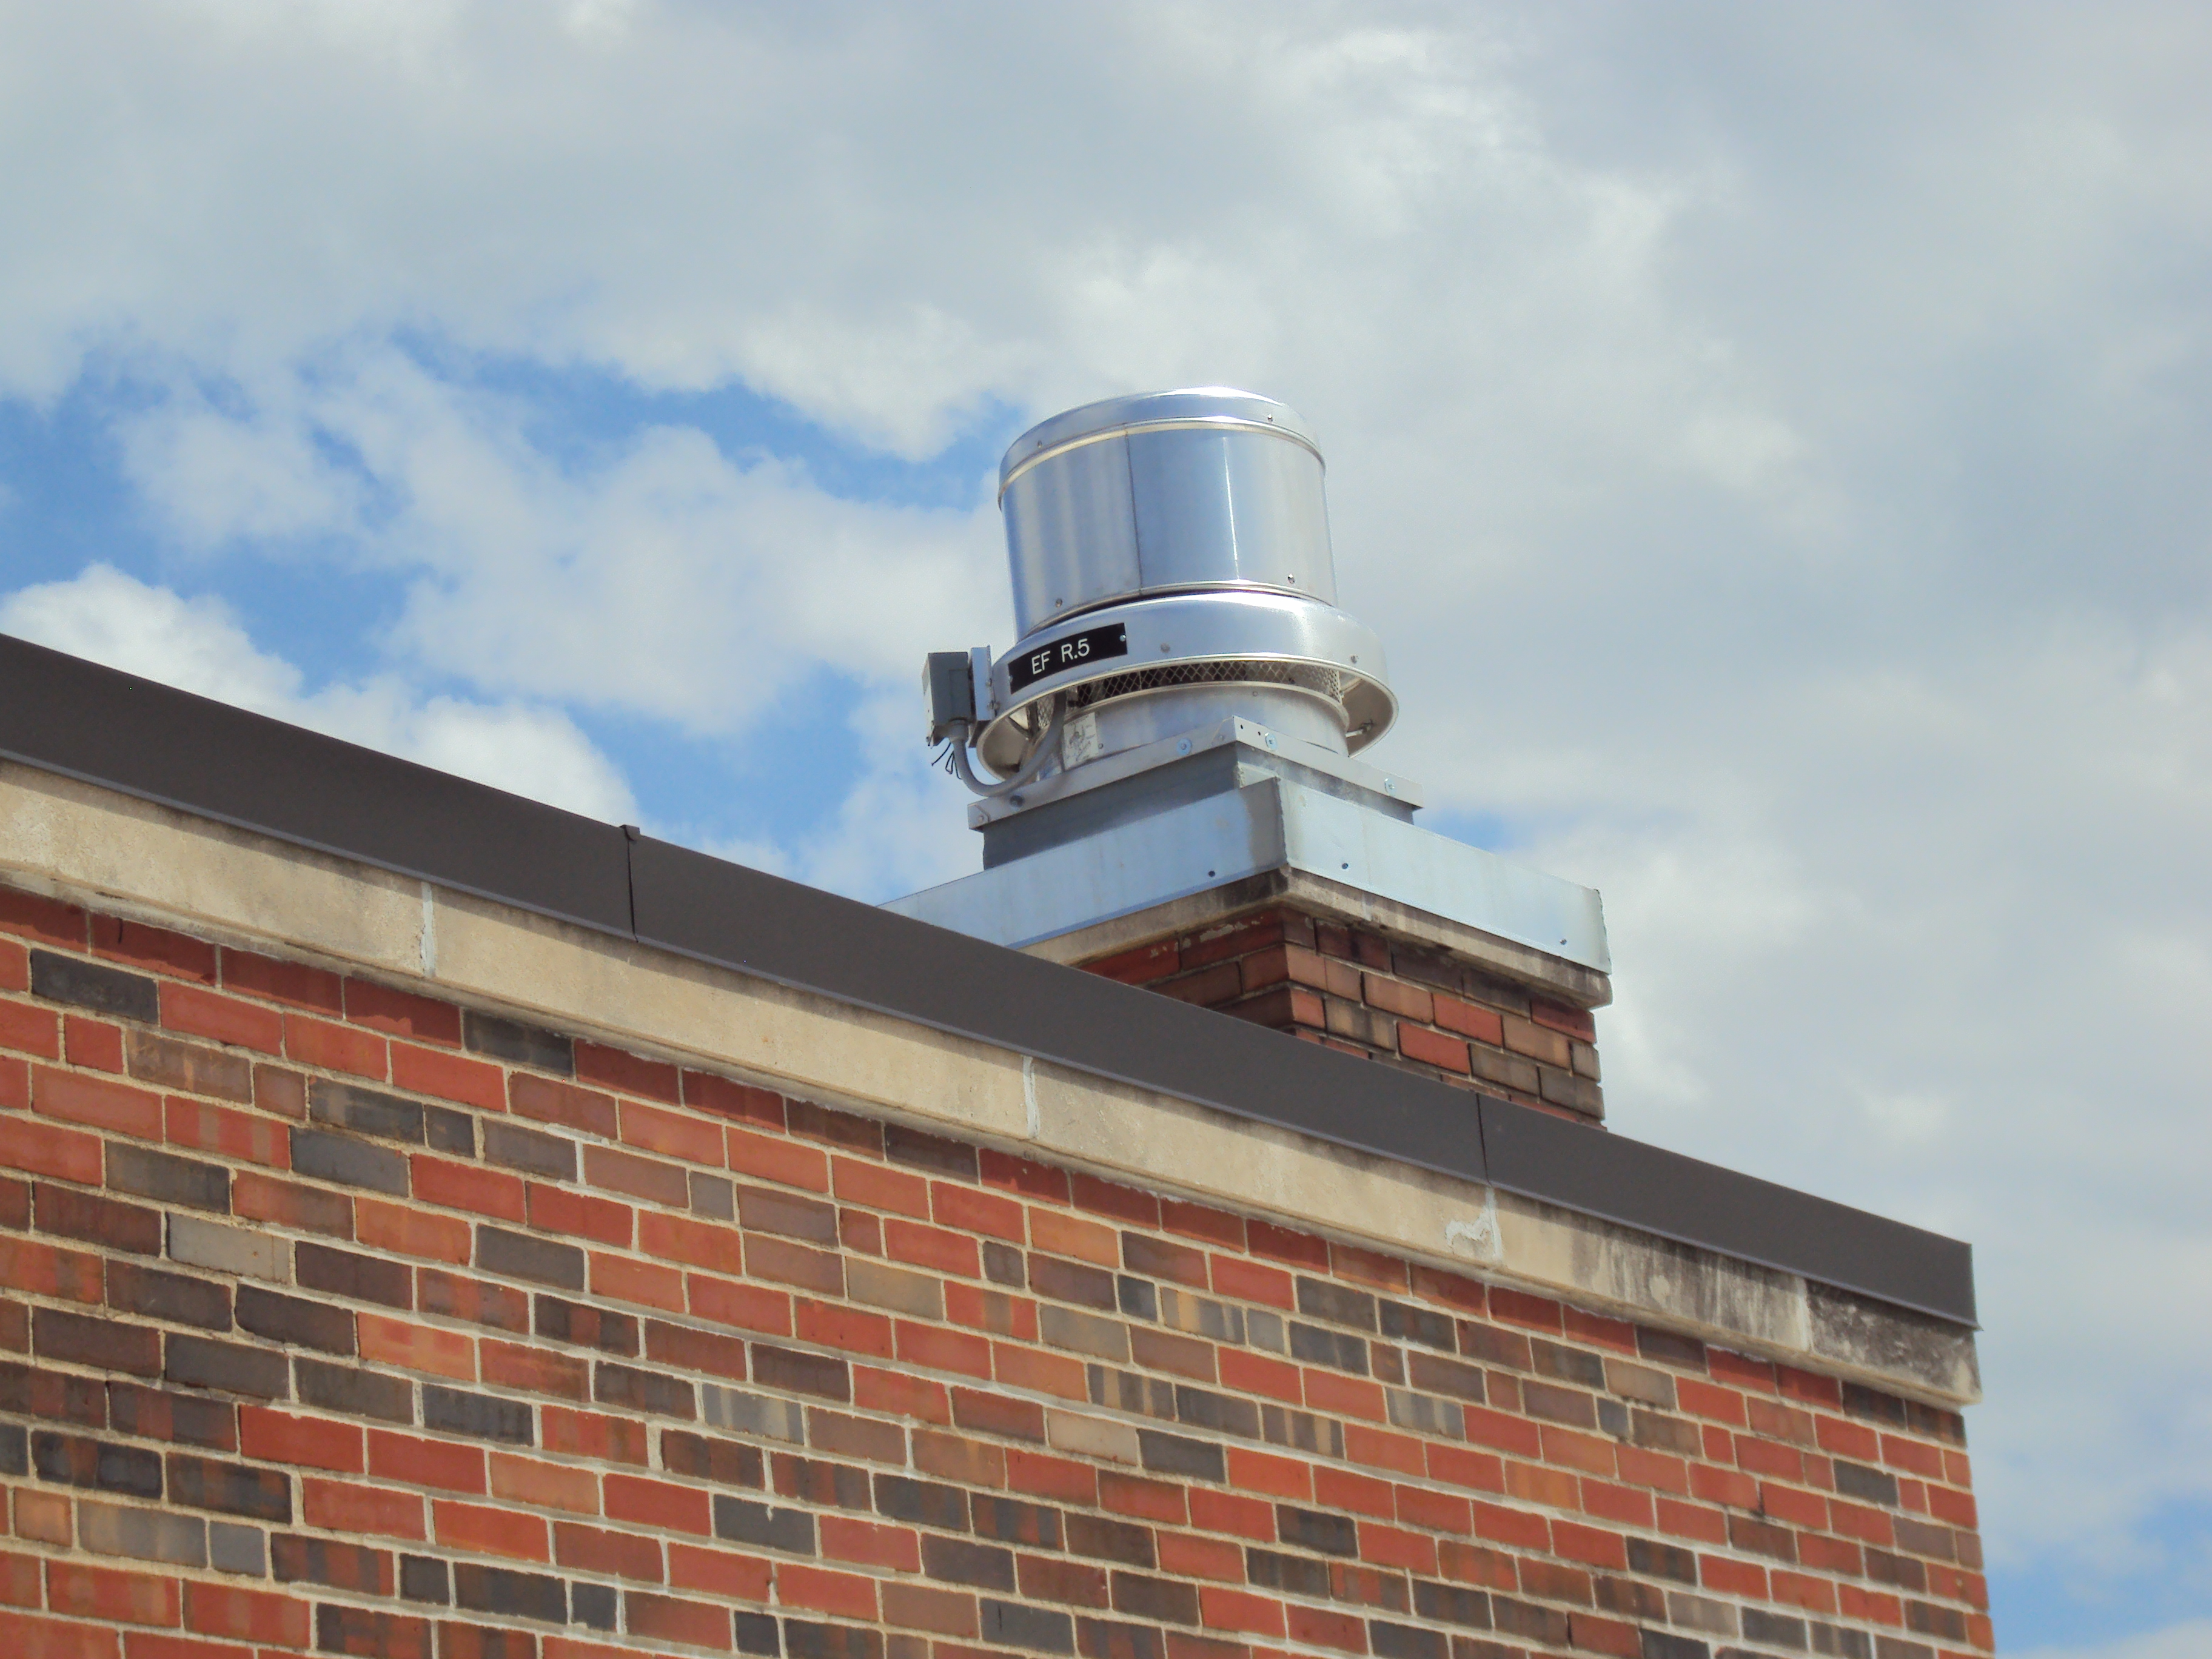 ex fan set on top of old chimney